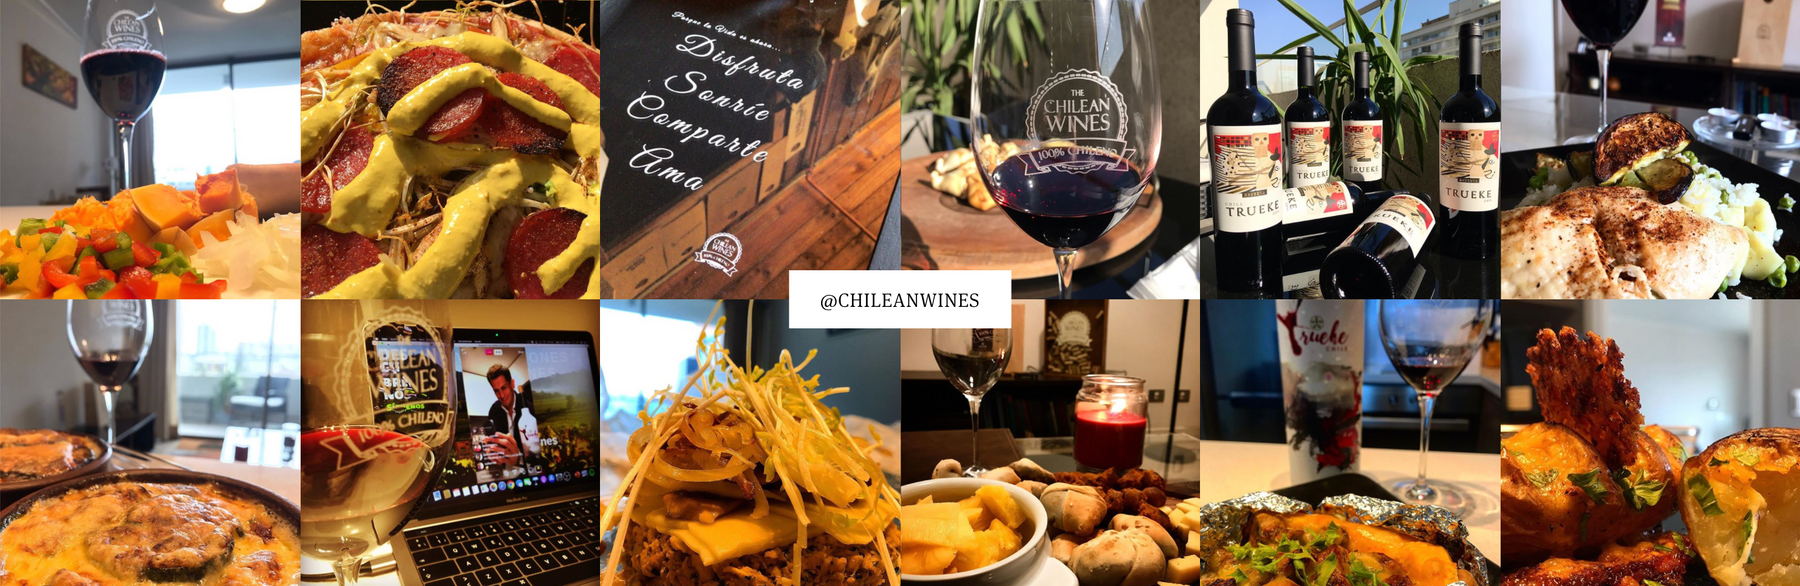 Instagram de chileanwines